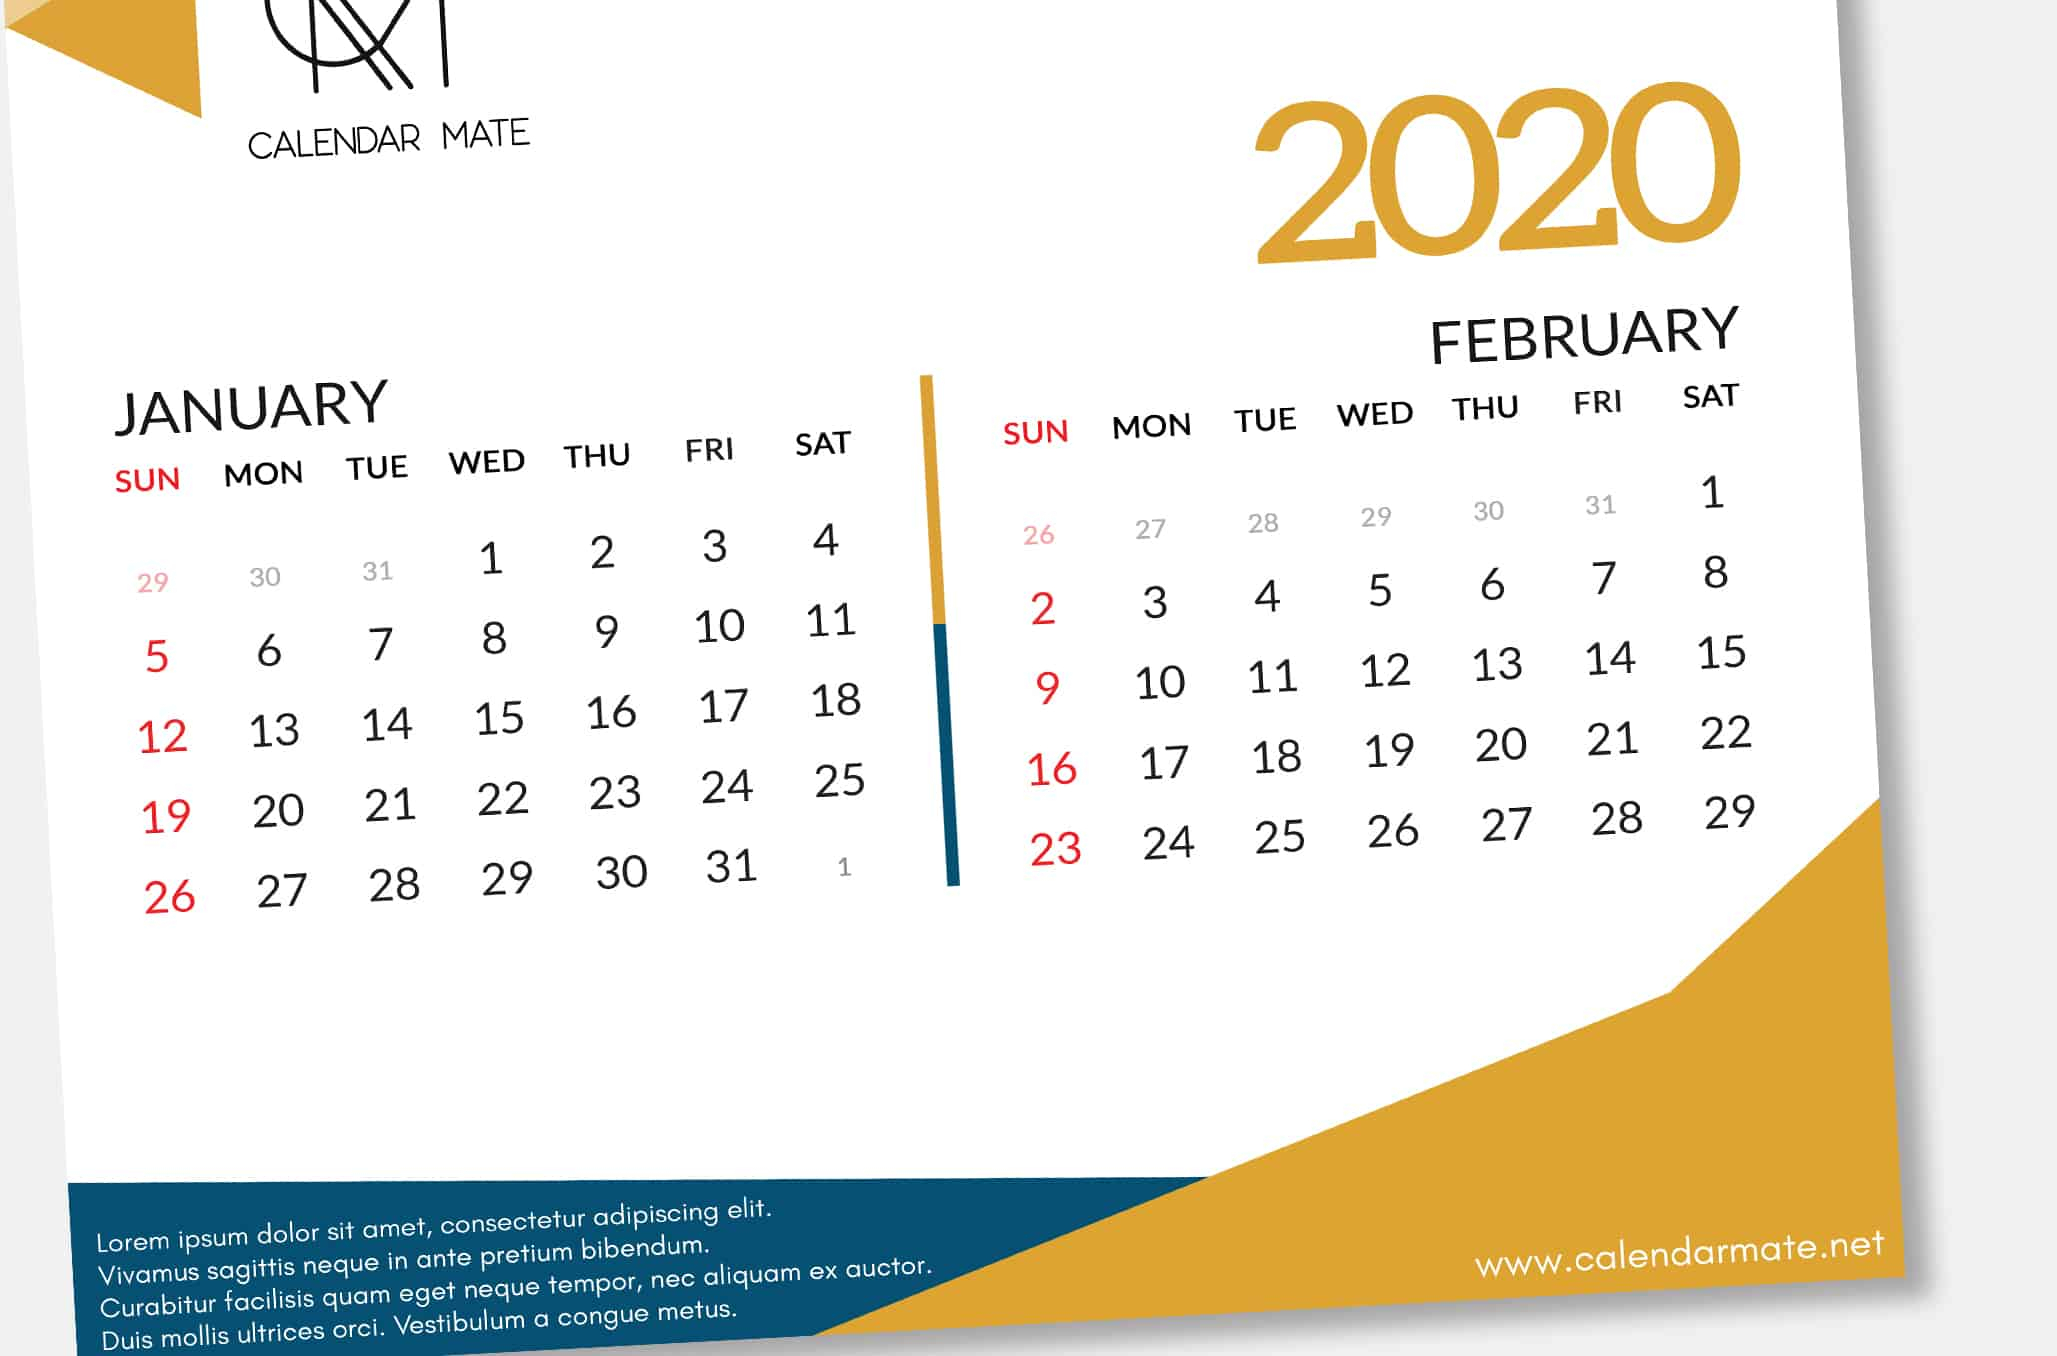 Календарь 2020 Psd  Bagno.site pertaining to 2020 Calendar Psd File